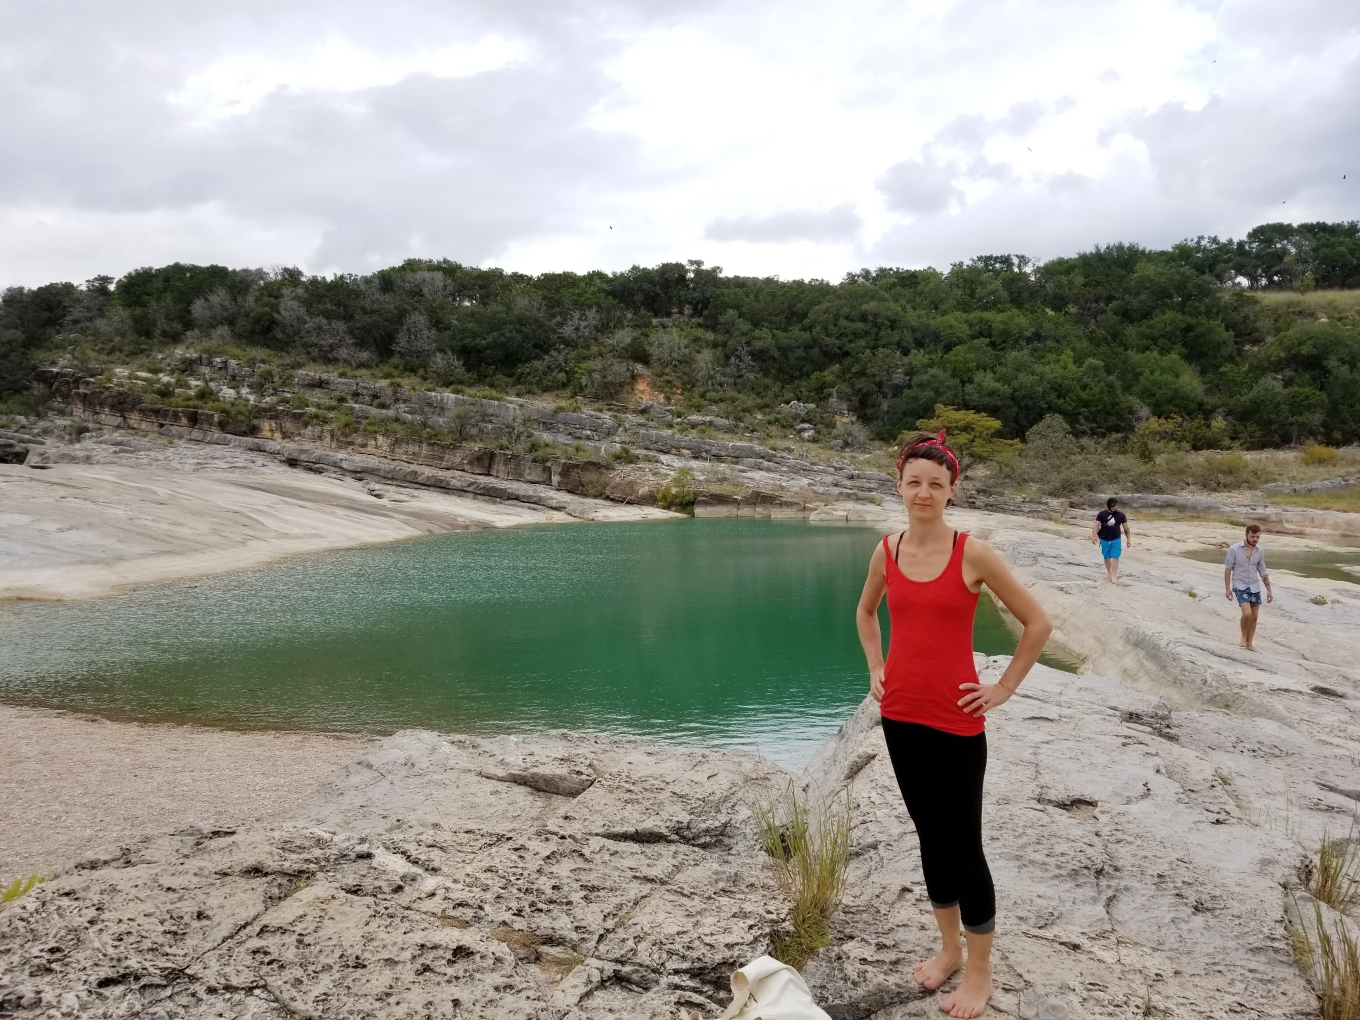 Beia, J, and Max exploring the limestone steps that make up the Pedernales Falls while the Pedernales River is low